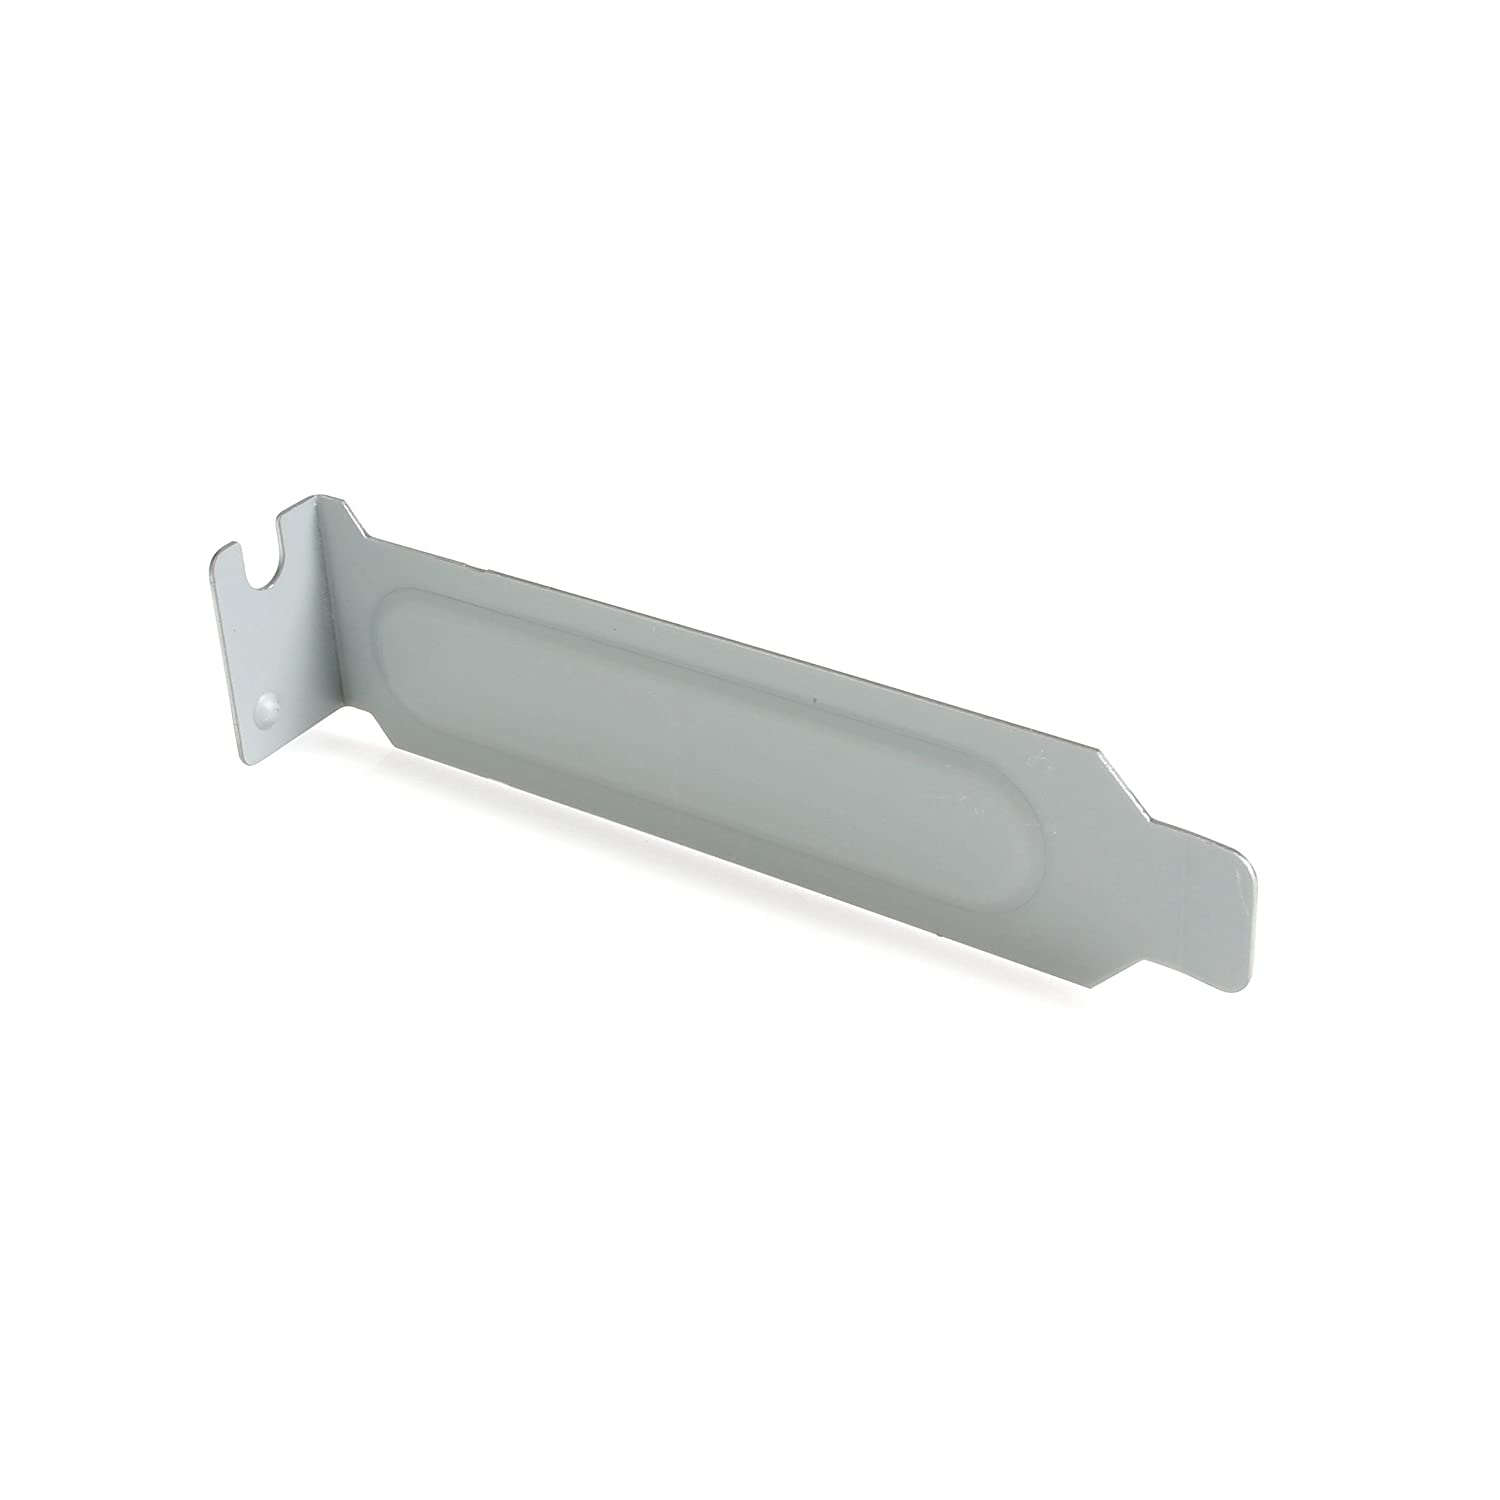 10 Pack StarTech.com Steel Full Profile Expansion Slot Cover Plate